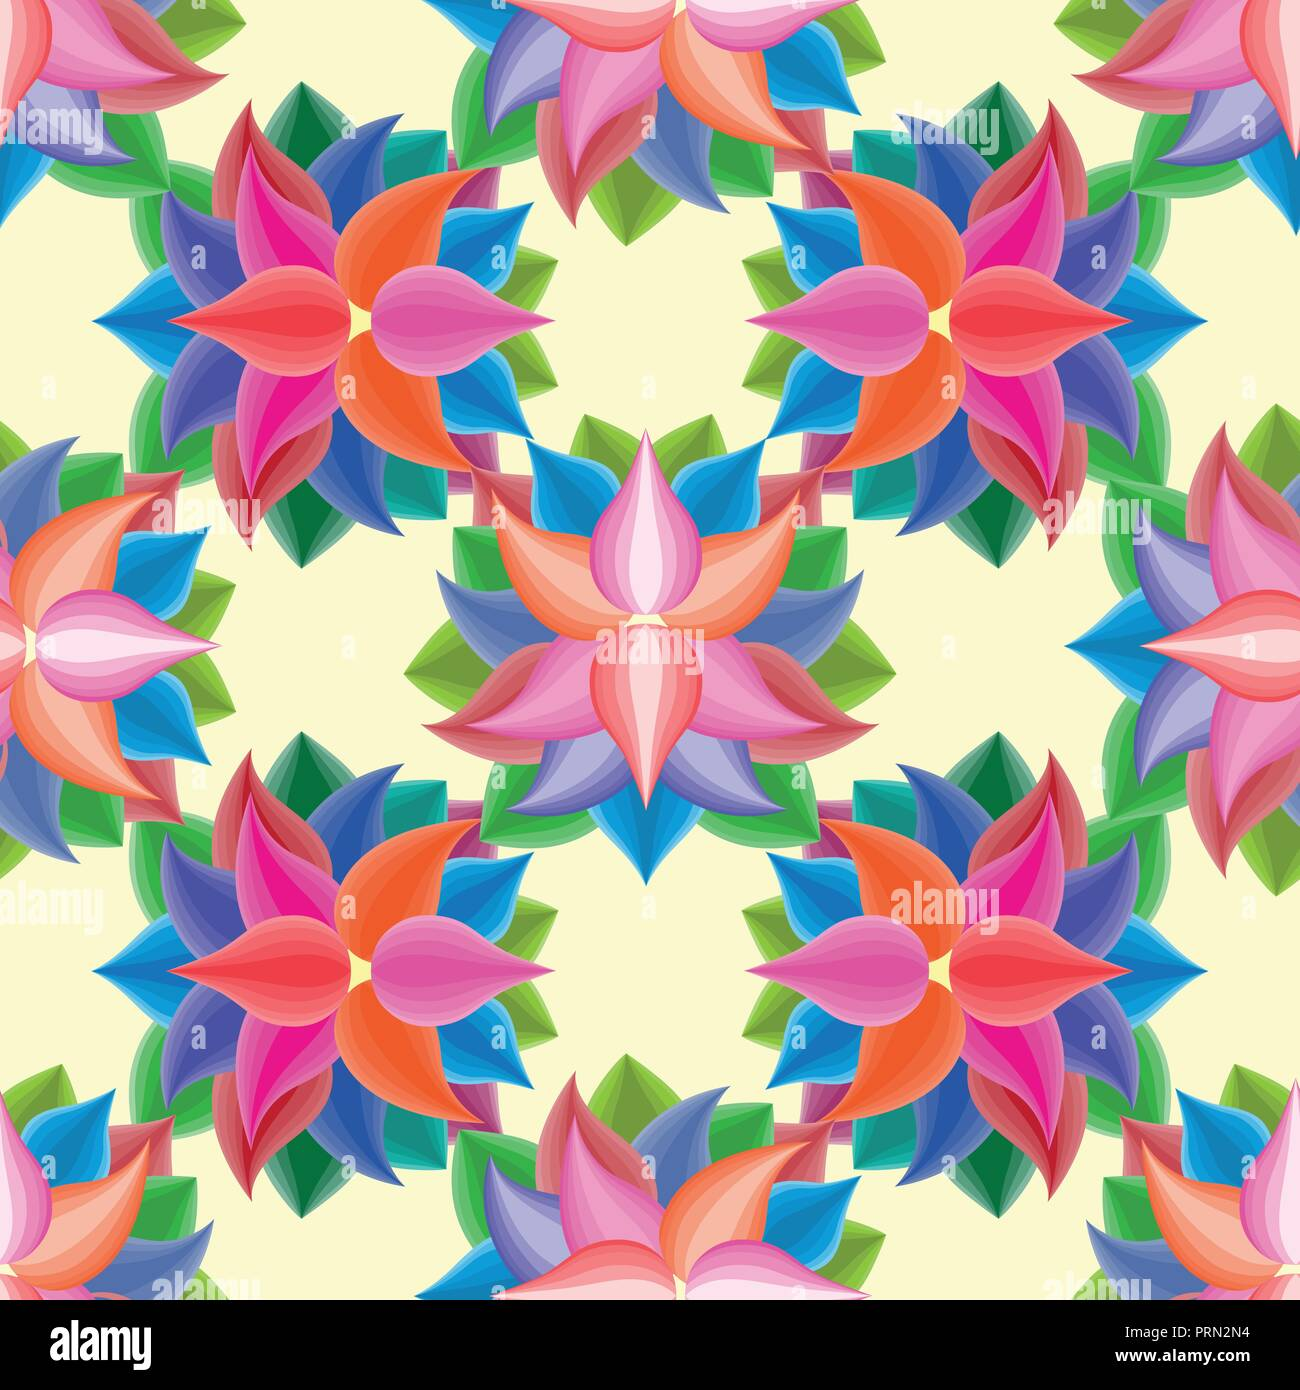 Abstract Seamless Pattern With Flowers Floral Wallpaper With Cute